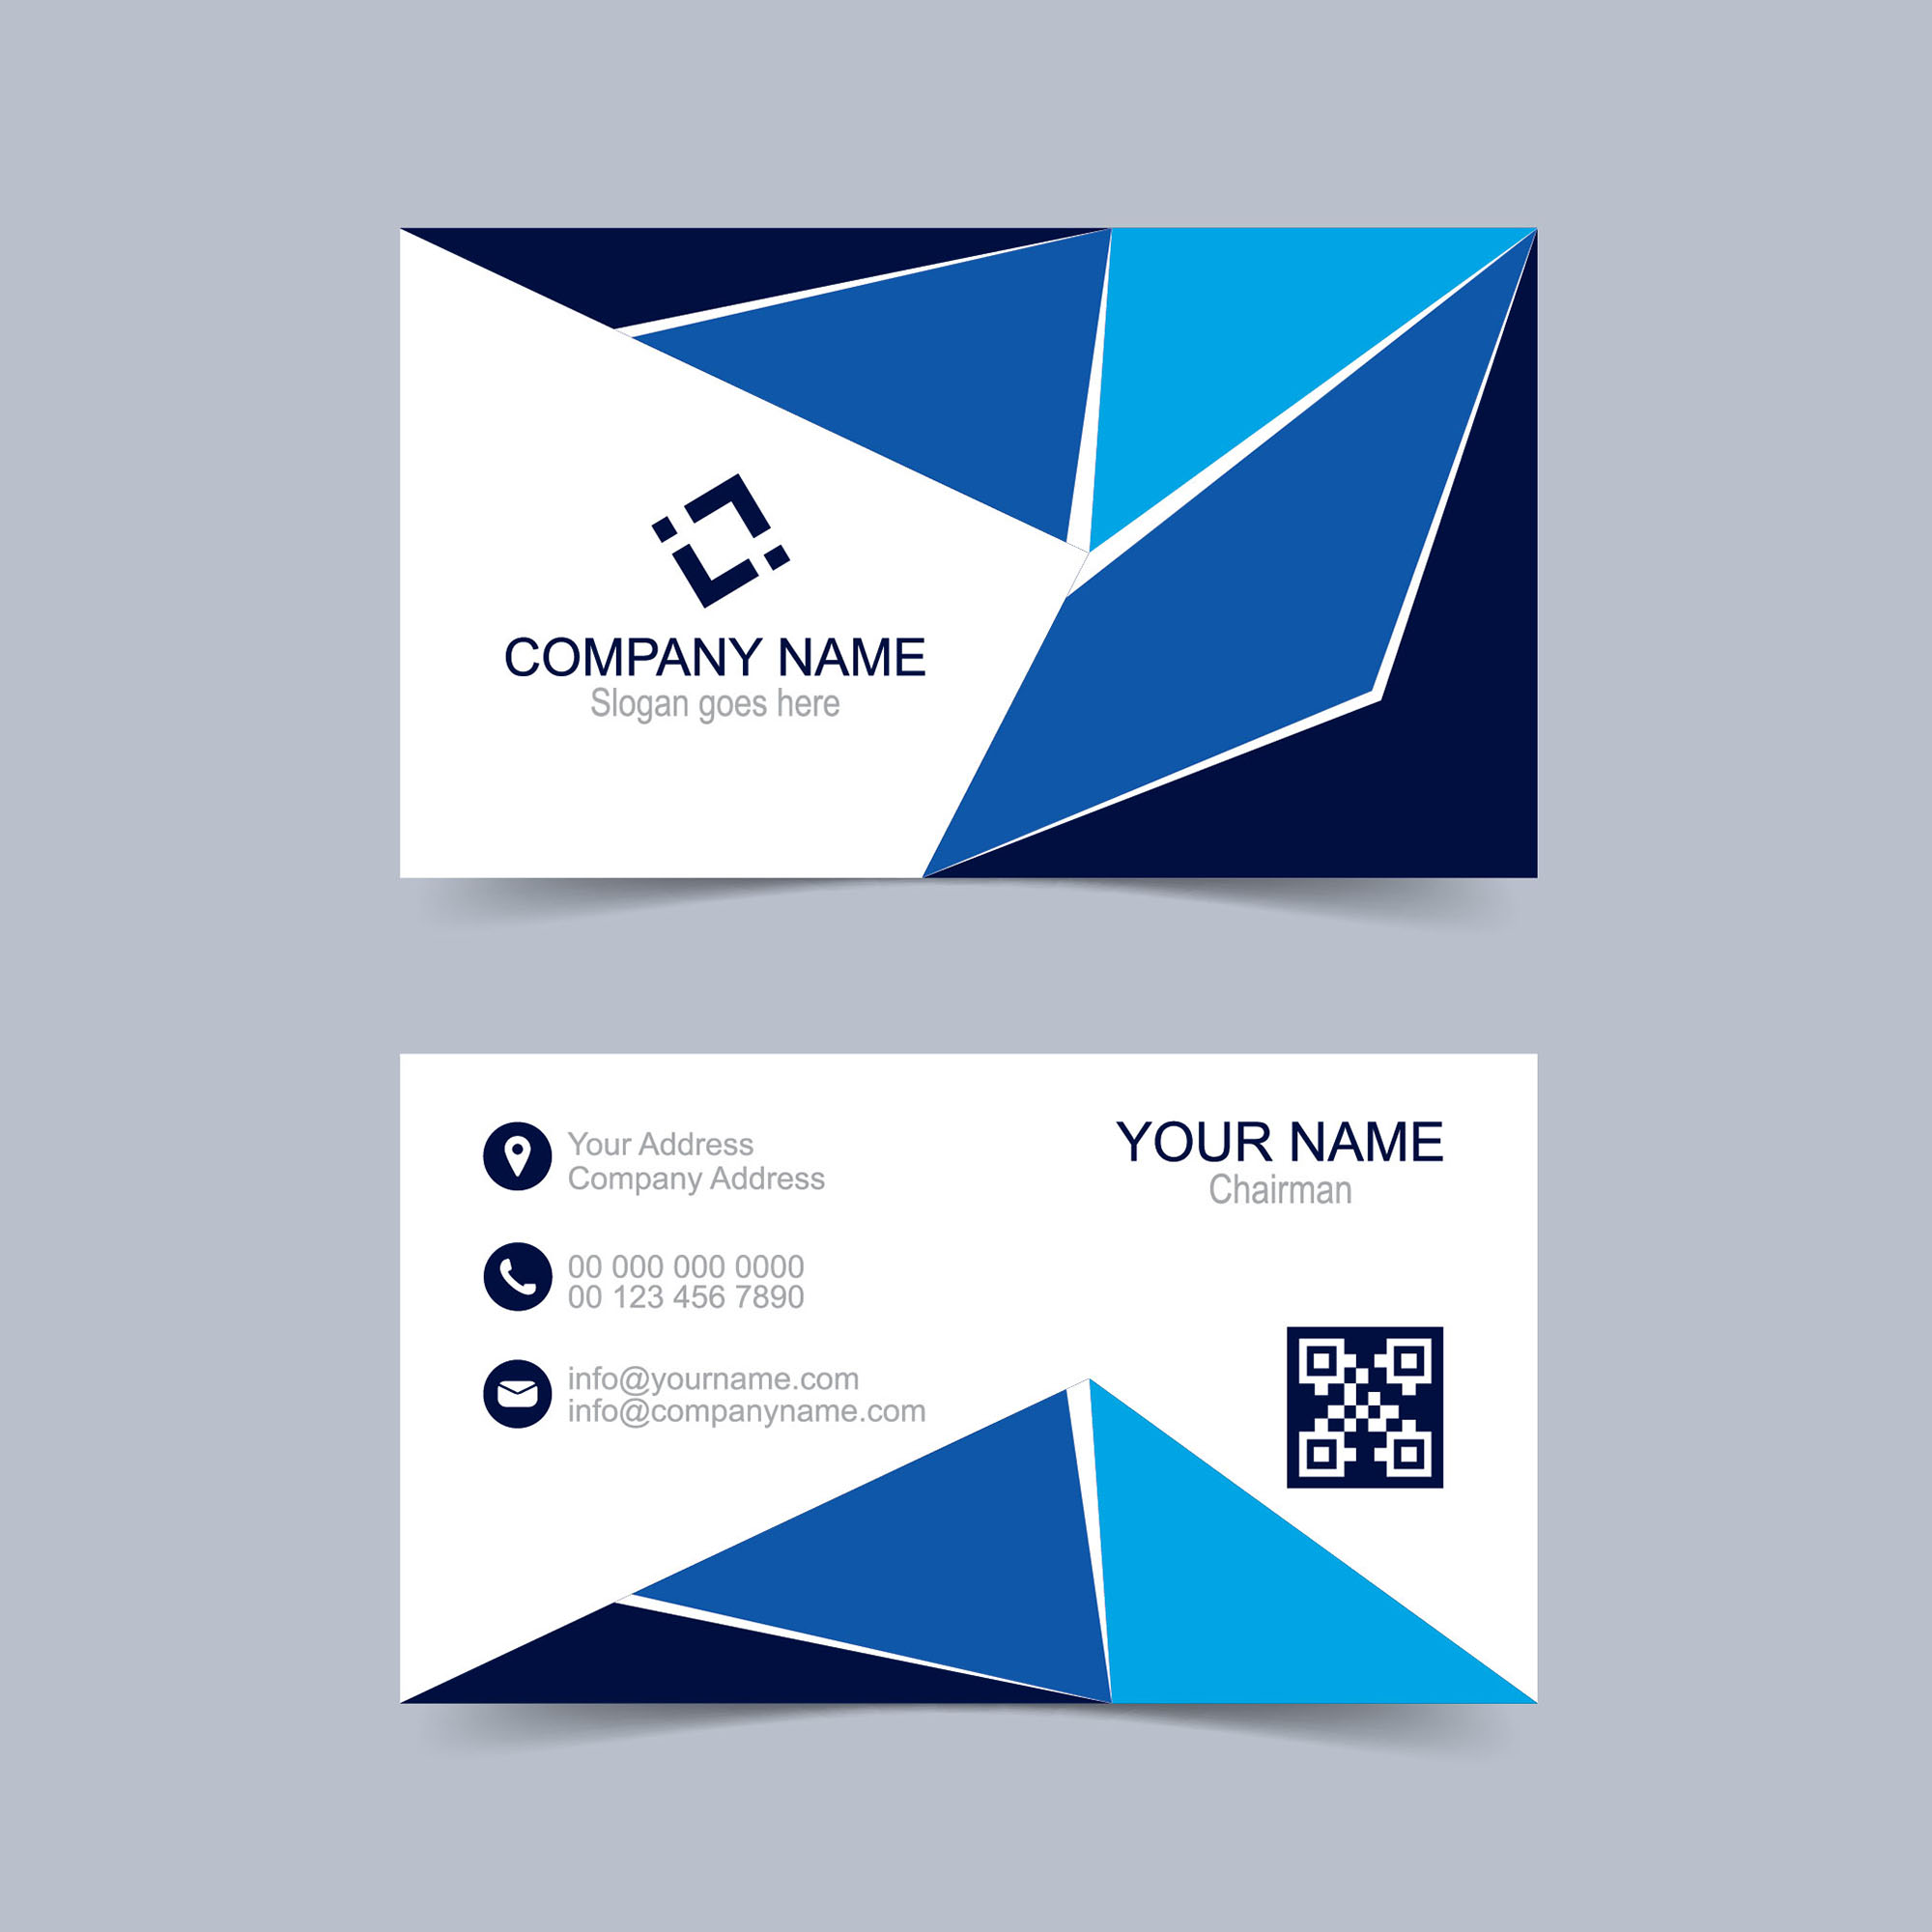 Creative business card design free download wisxi business card business cards business card design business card template design templates cheaphphosting Gallery